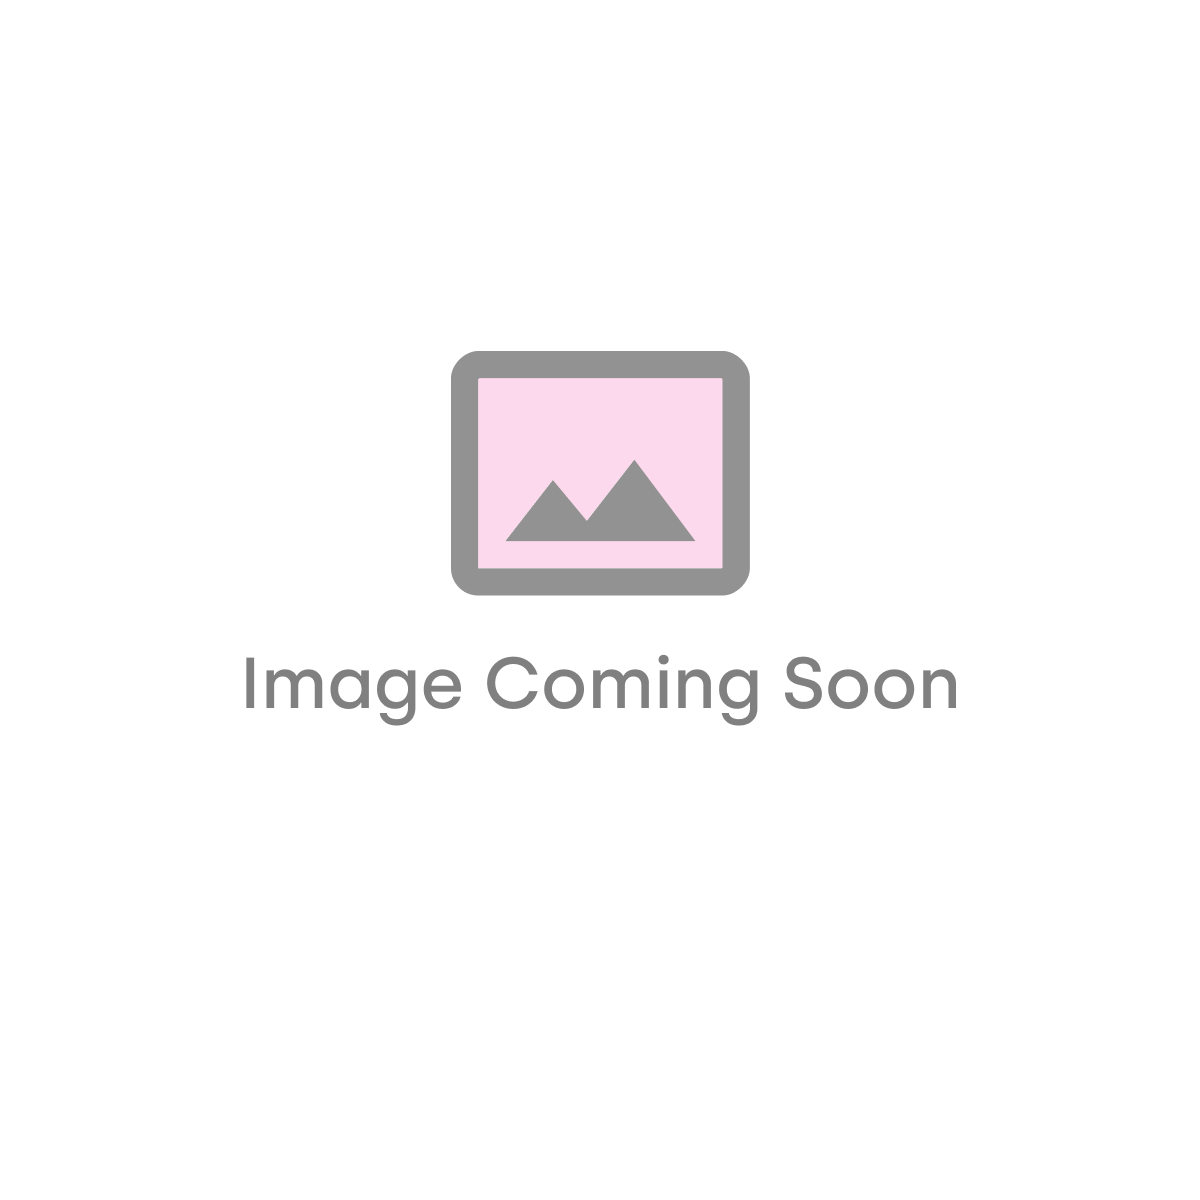 Ruby Back to Wall Pan & Standard Seat  (19175)